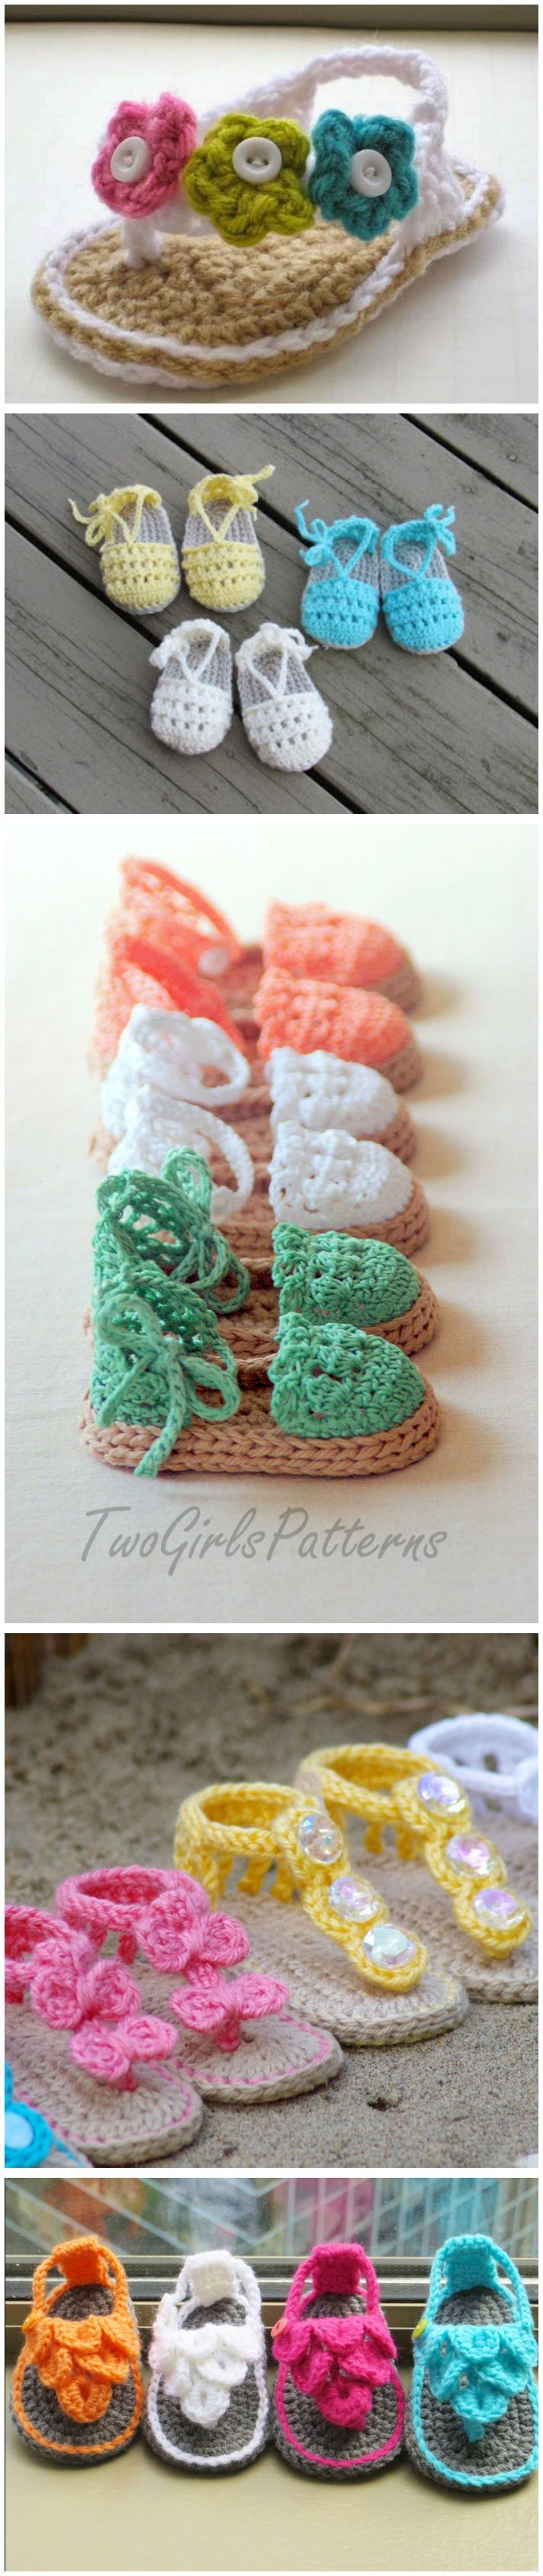 Crochet Baby Flip Flop Sandals with Patterns -